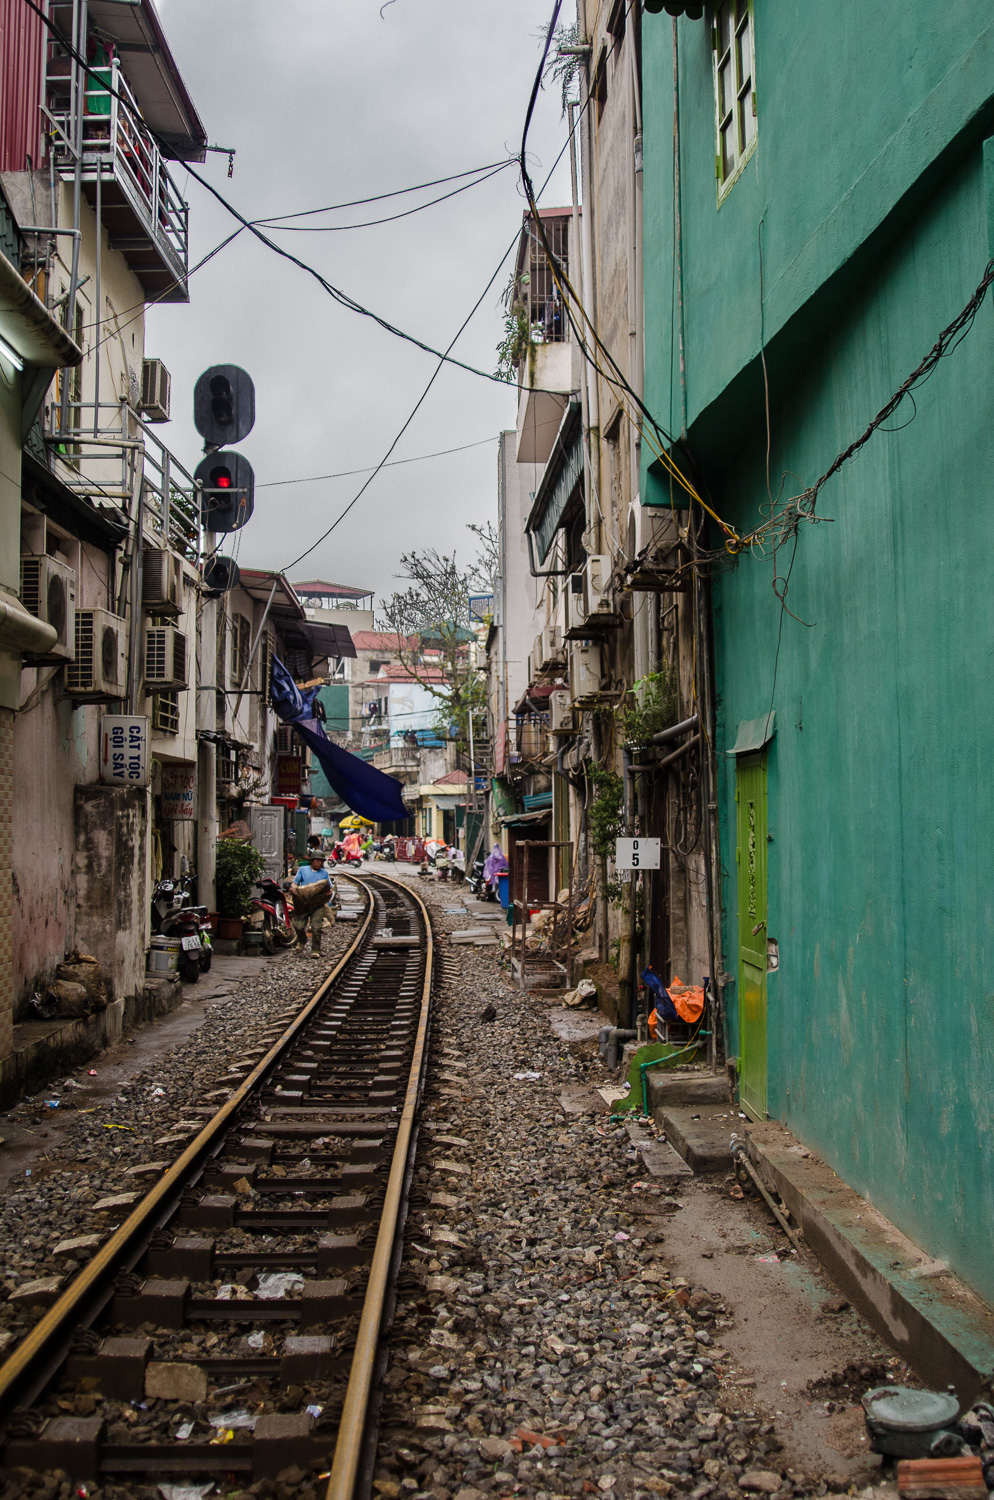 houses-on-train-tracks-hanoi.jpg